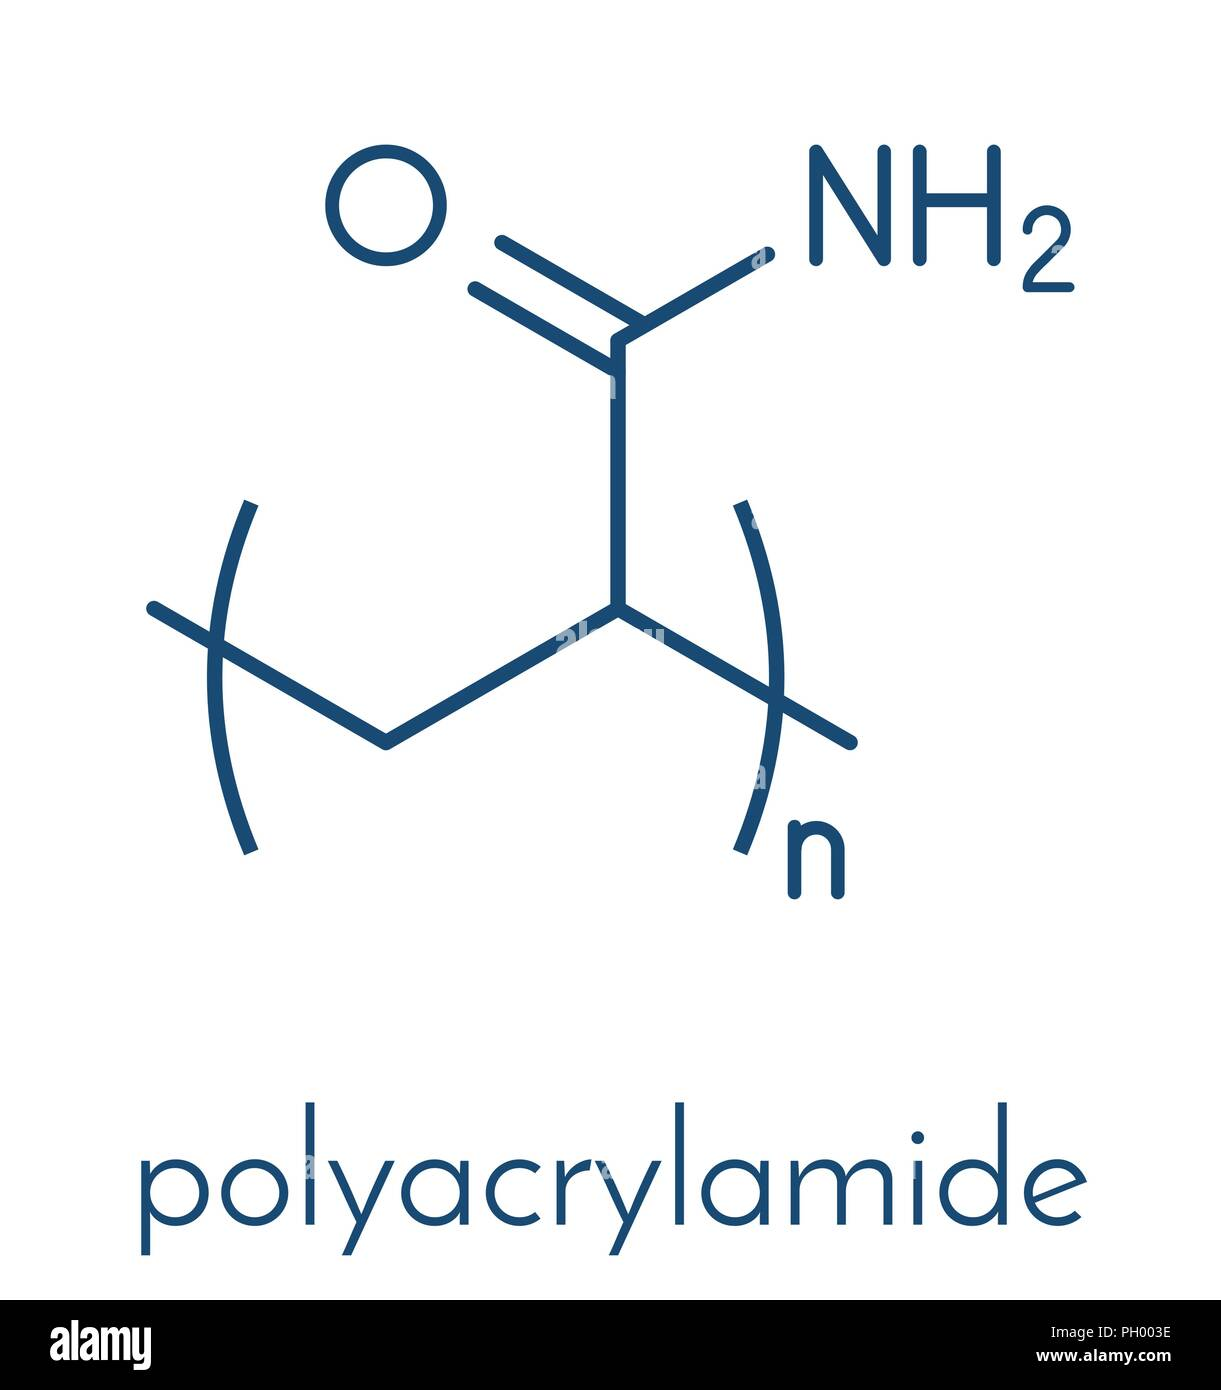 Polyacrylamide (PAM) polymer, chemical structure. Skeletal formula. - Stock Vector